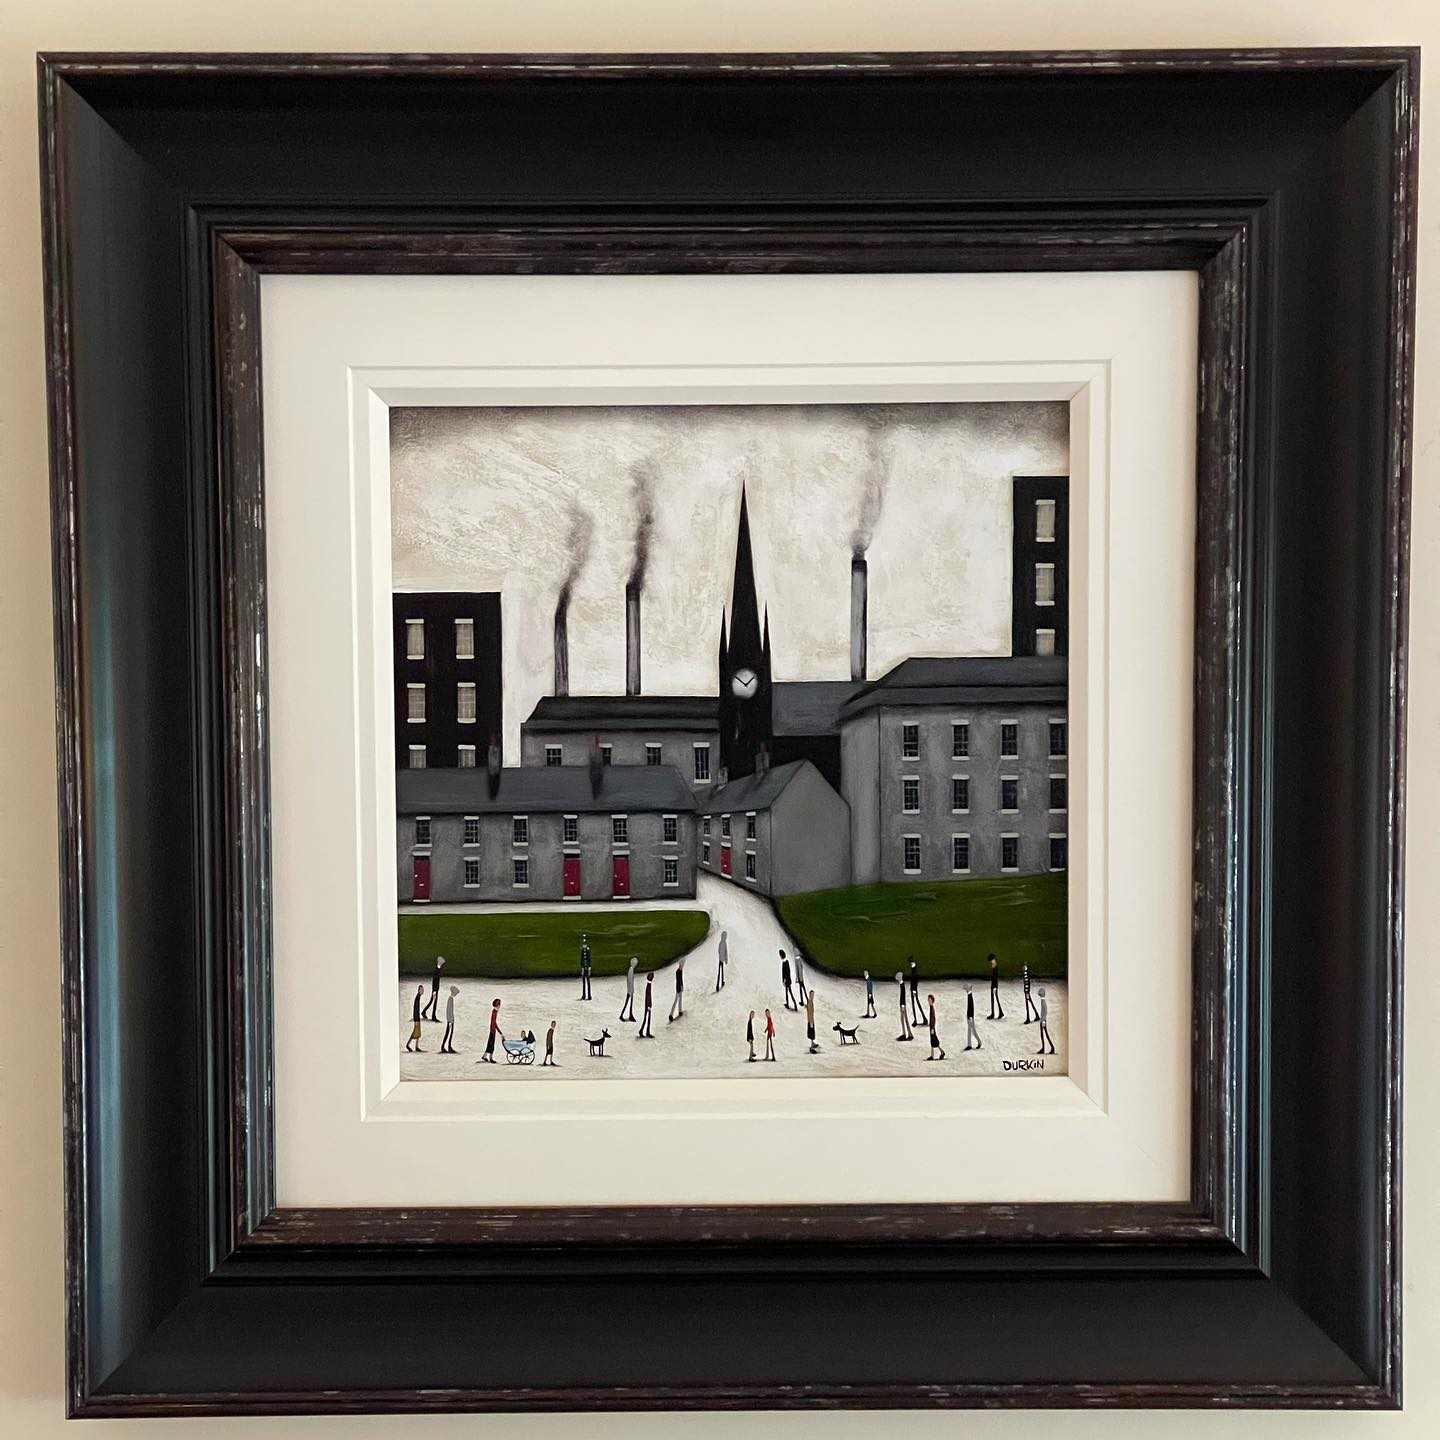 Our latest addition is this original painting by @seandurkin2 purchased from @indigoartgallery Sean's dad stole an original L. S. Lowry in 1972 which Sean remembers being in the house and which ultimately influenced his painting career.  His work now hangs amongst other places next to the actual Lowry painting his dad stole, in the Middlesbrough Institute of Modern Art (MIMA)